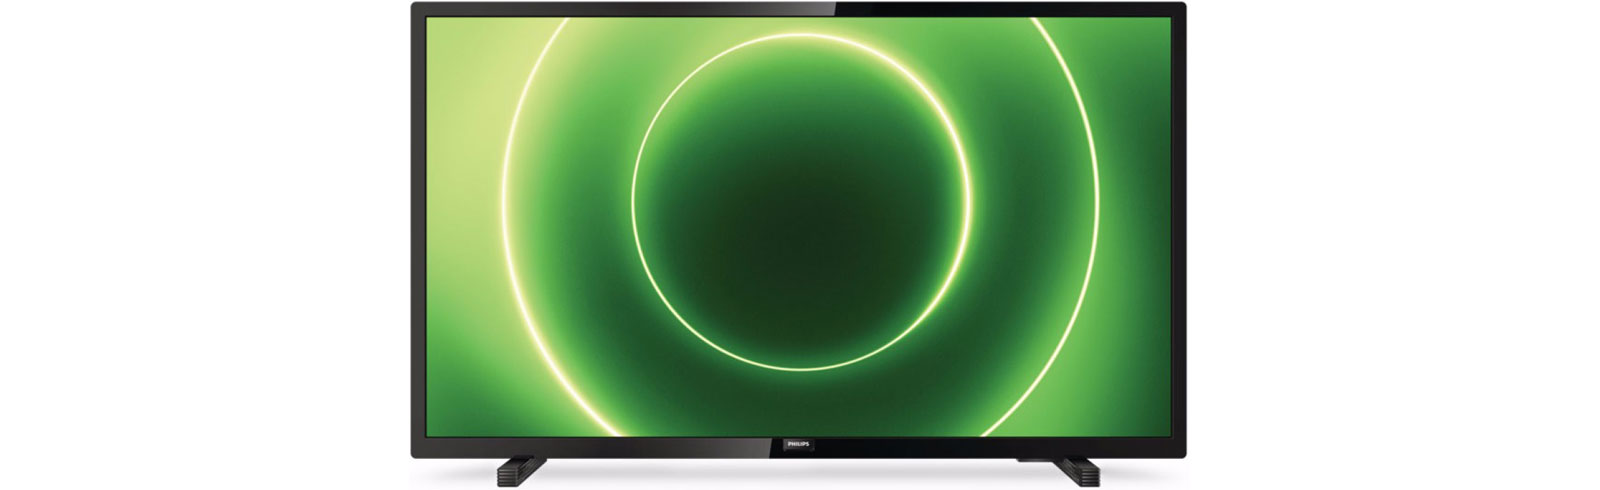 Philips 6805, 6605, and Philips 5505 FHD and HD TV series specifications and prices